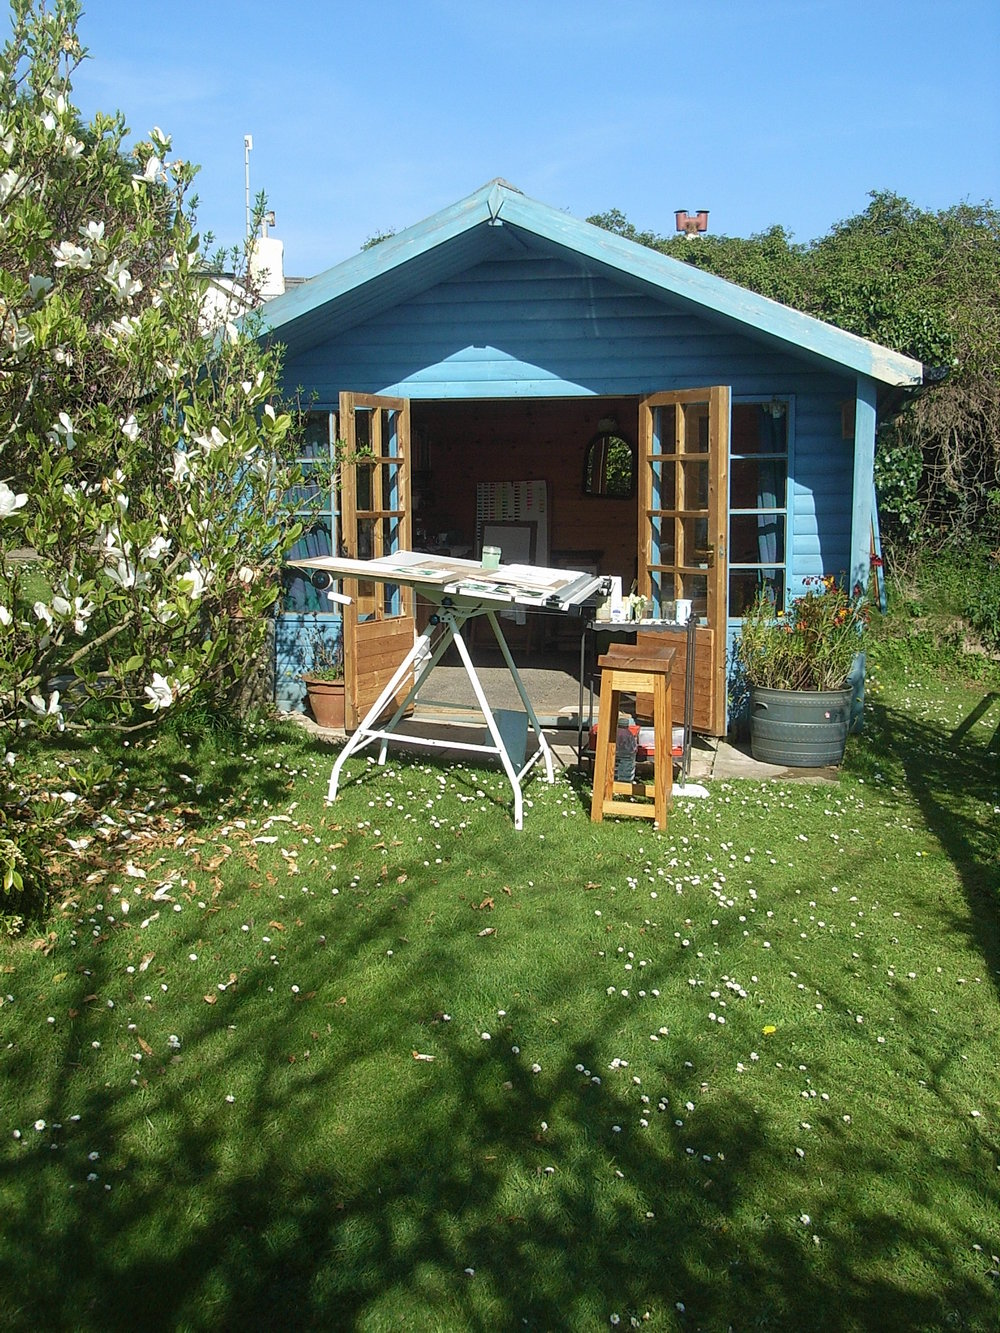 My Much Loved Garden Studio, so sad to be leaving.